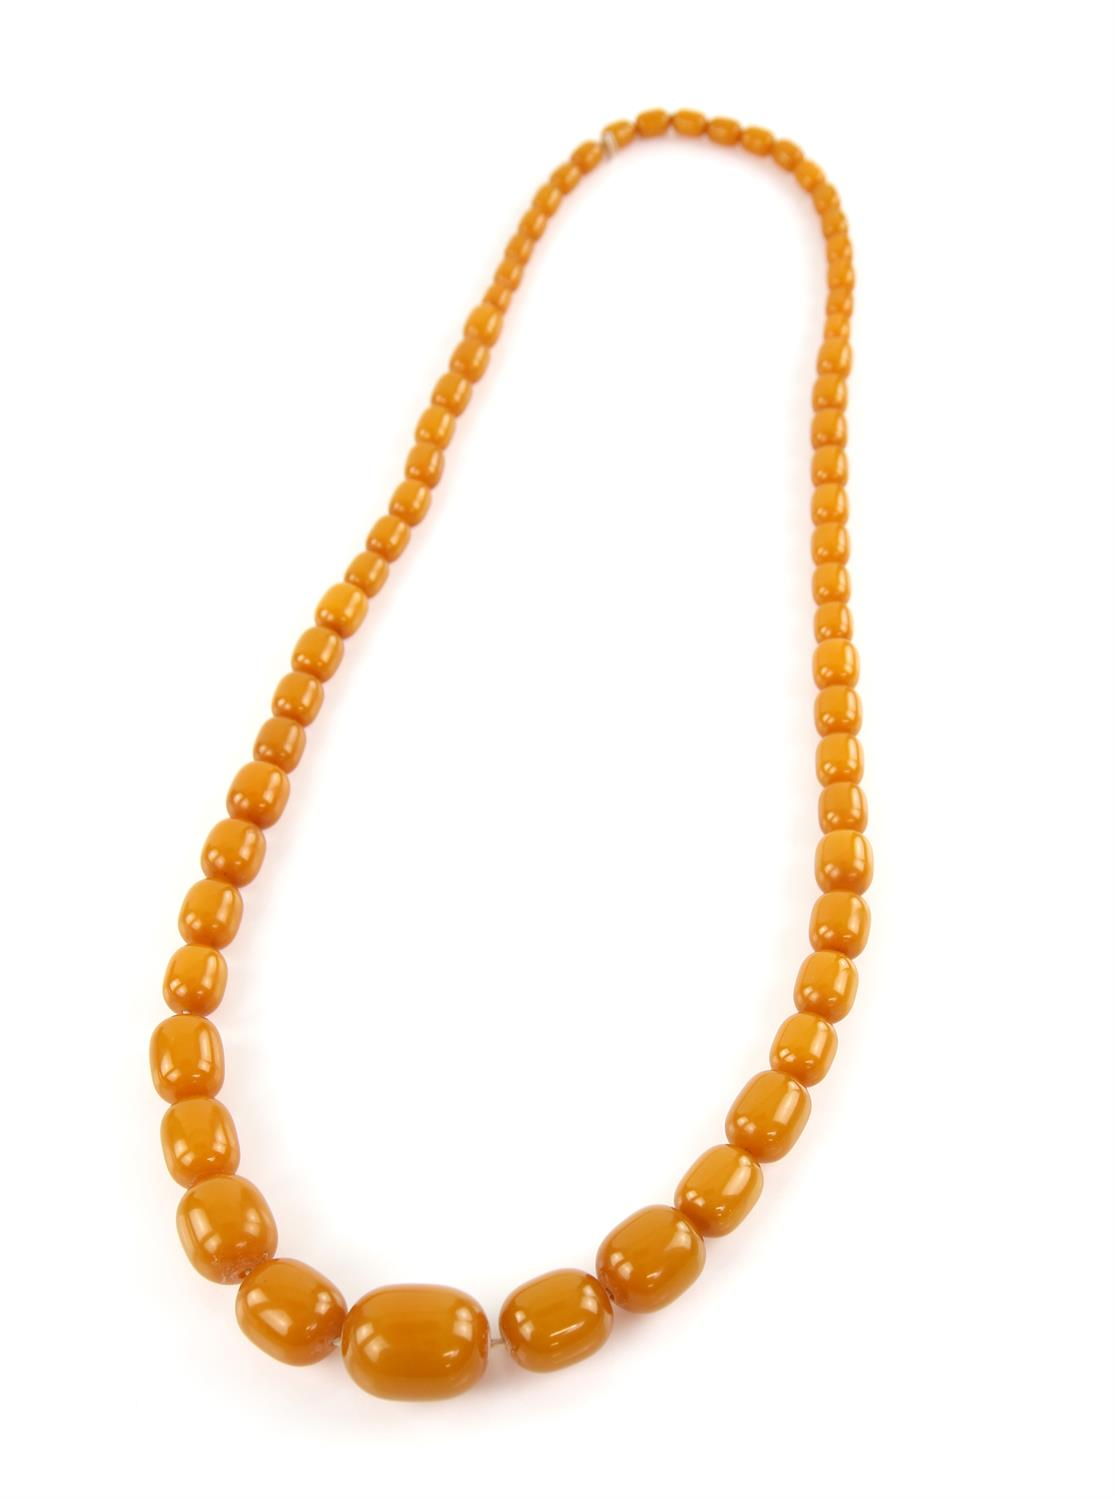 1920's plastic graduated bead necklace, the largest bead is 3x2.5cm and the length is approximately